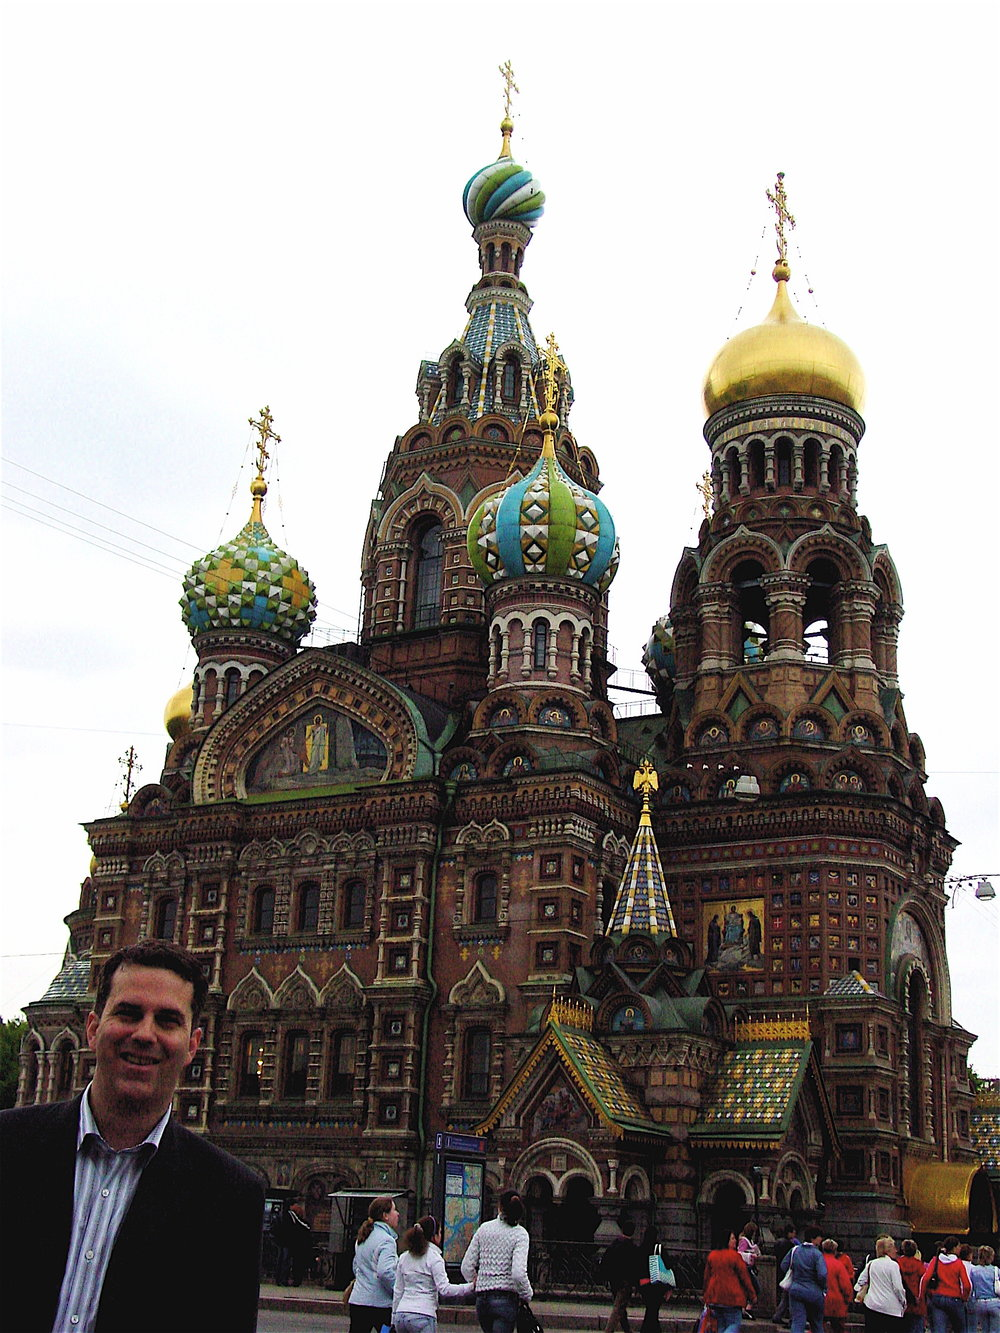 You'll need a visa to visit Russia. Huckleberry Travel can help you with that!